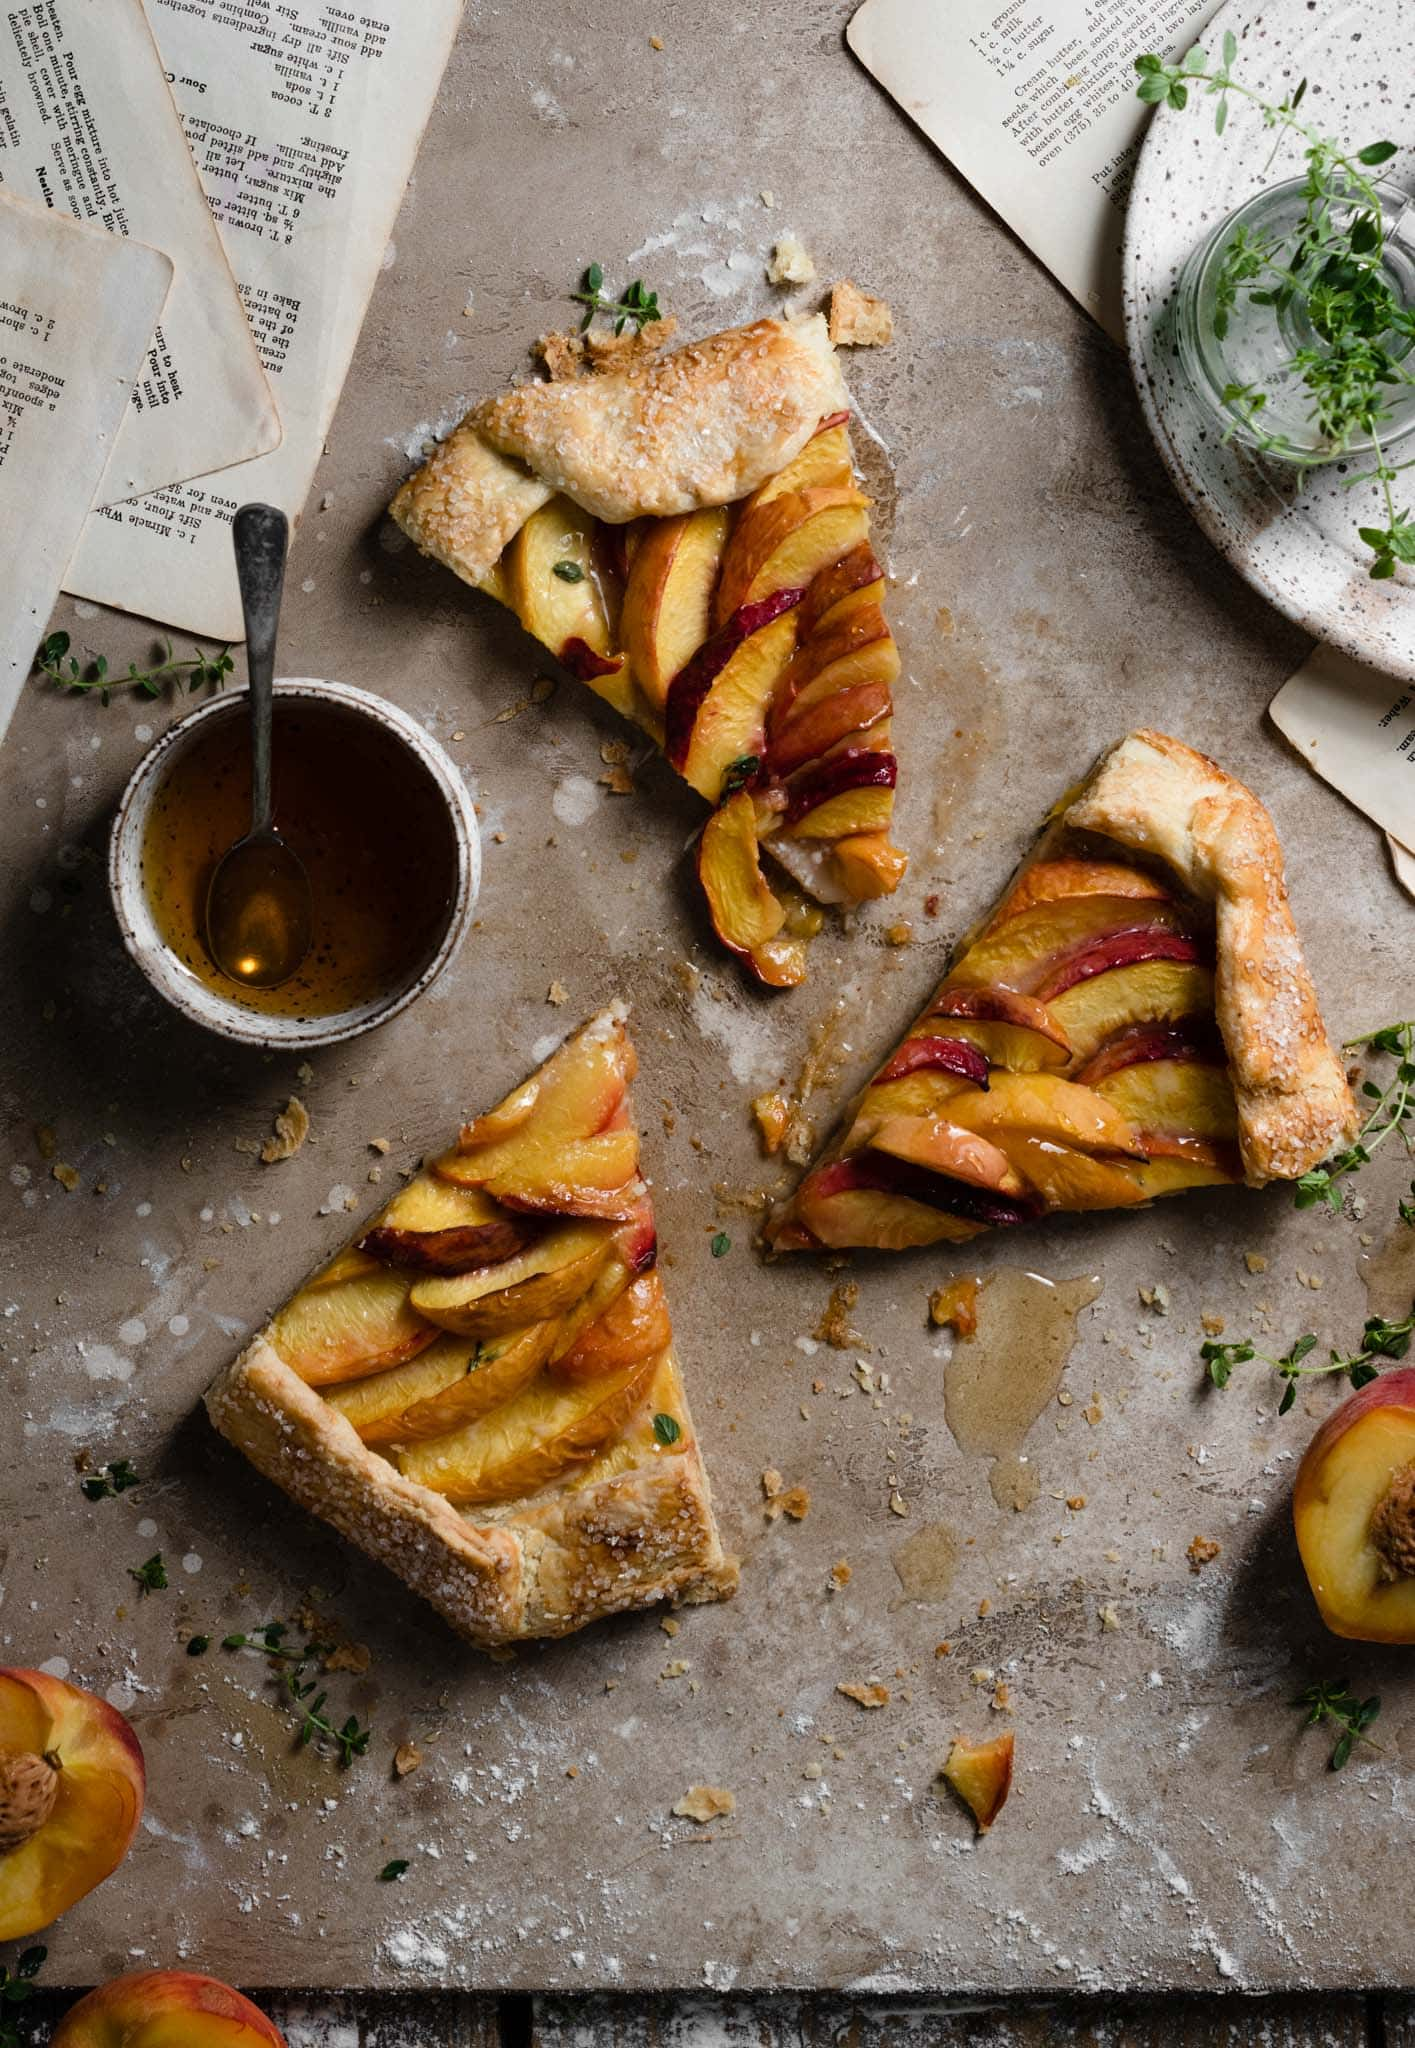 Rustic Tart peach galette with butter crust.